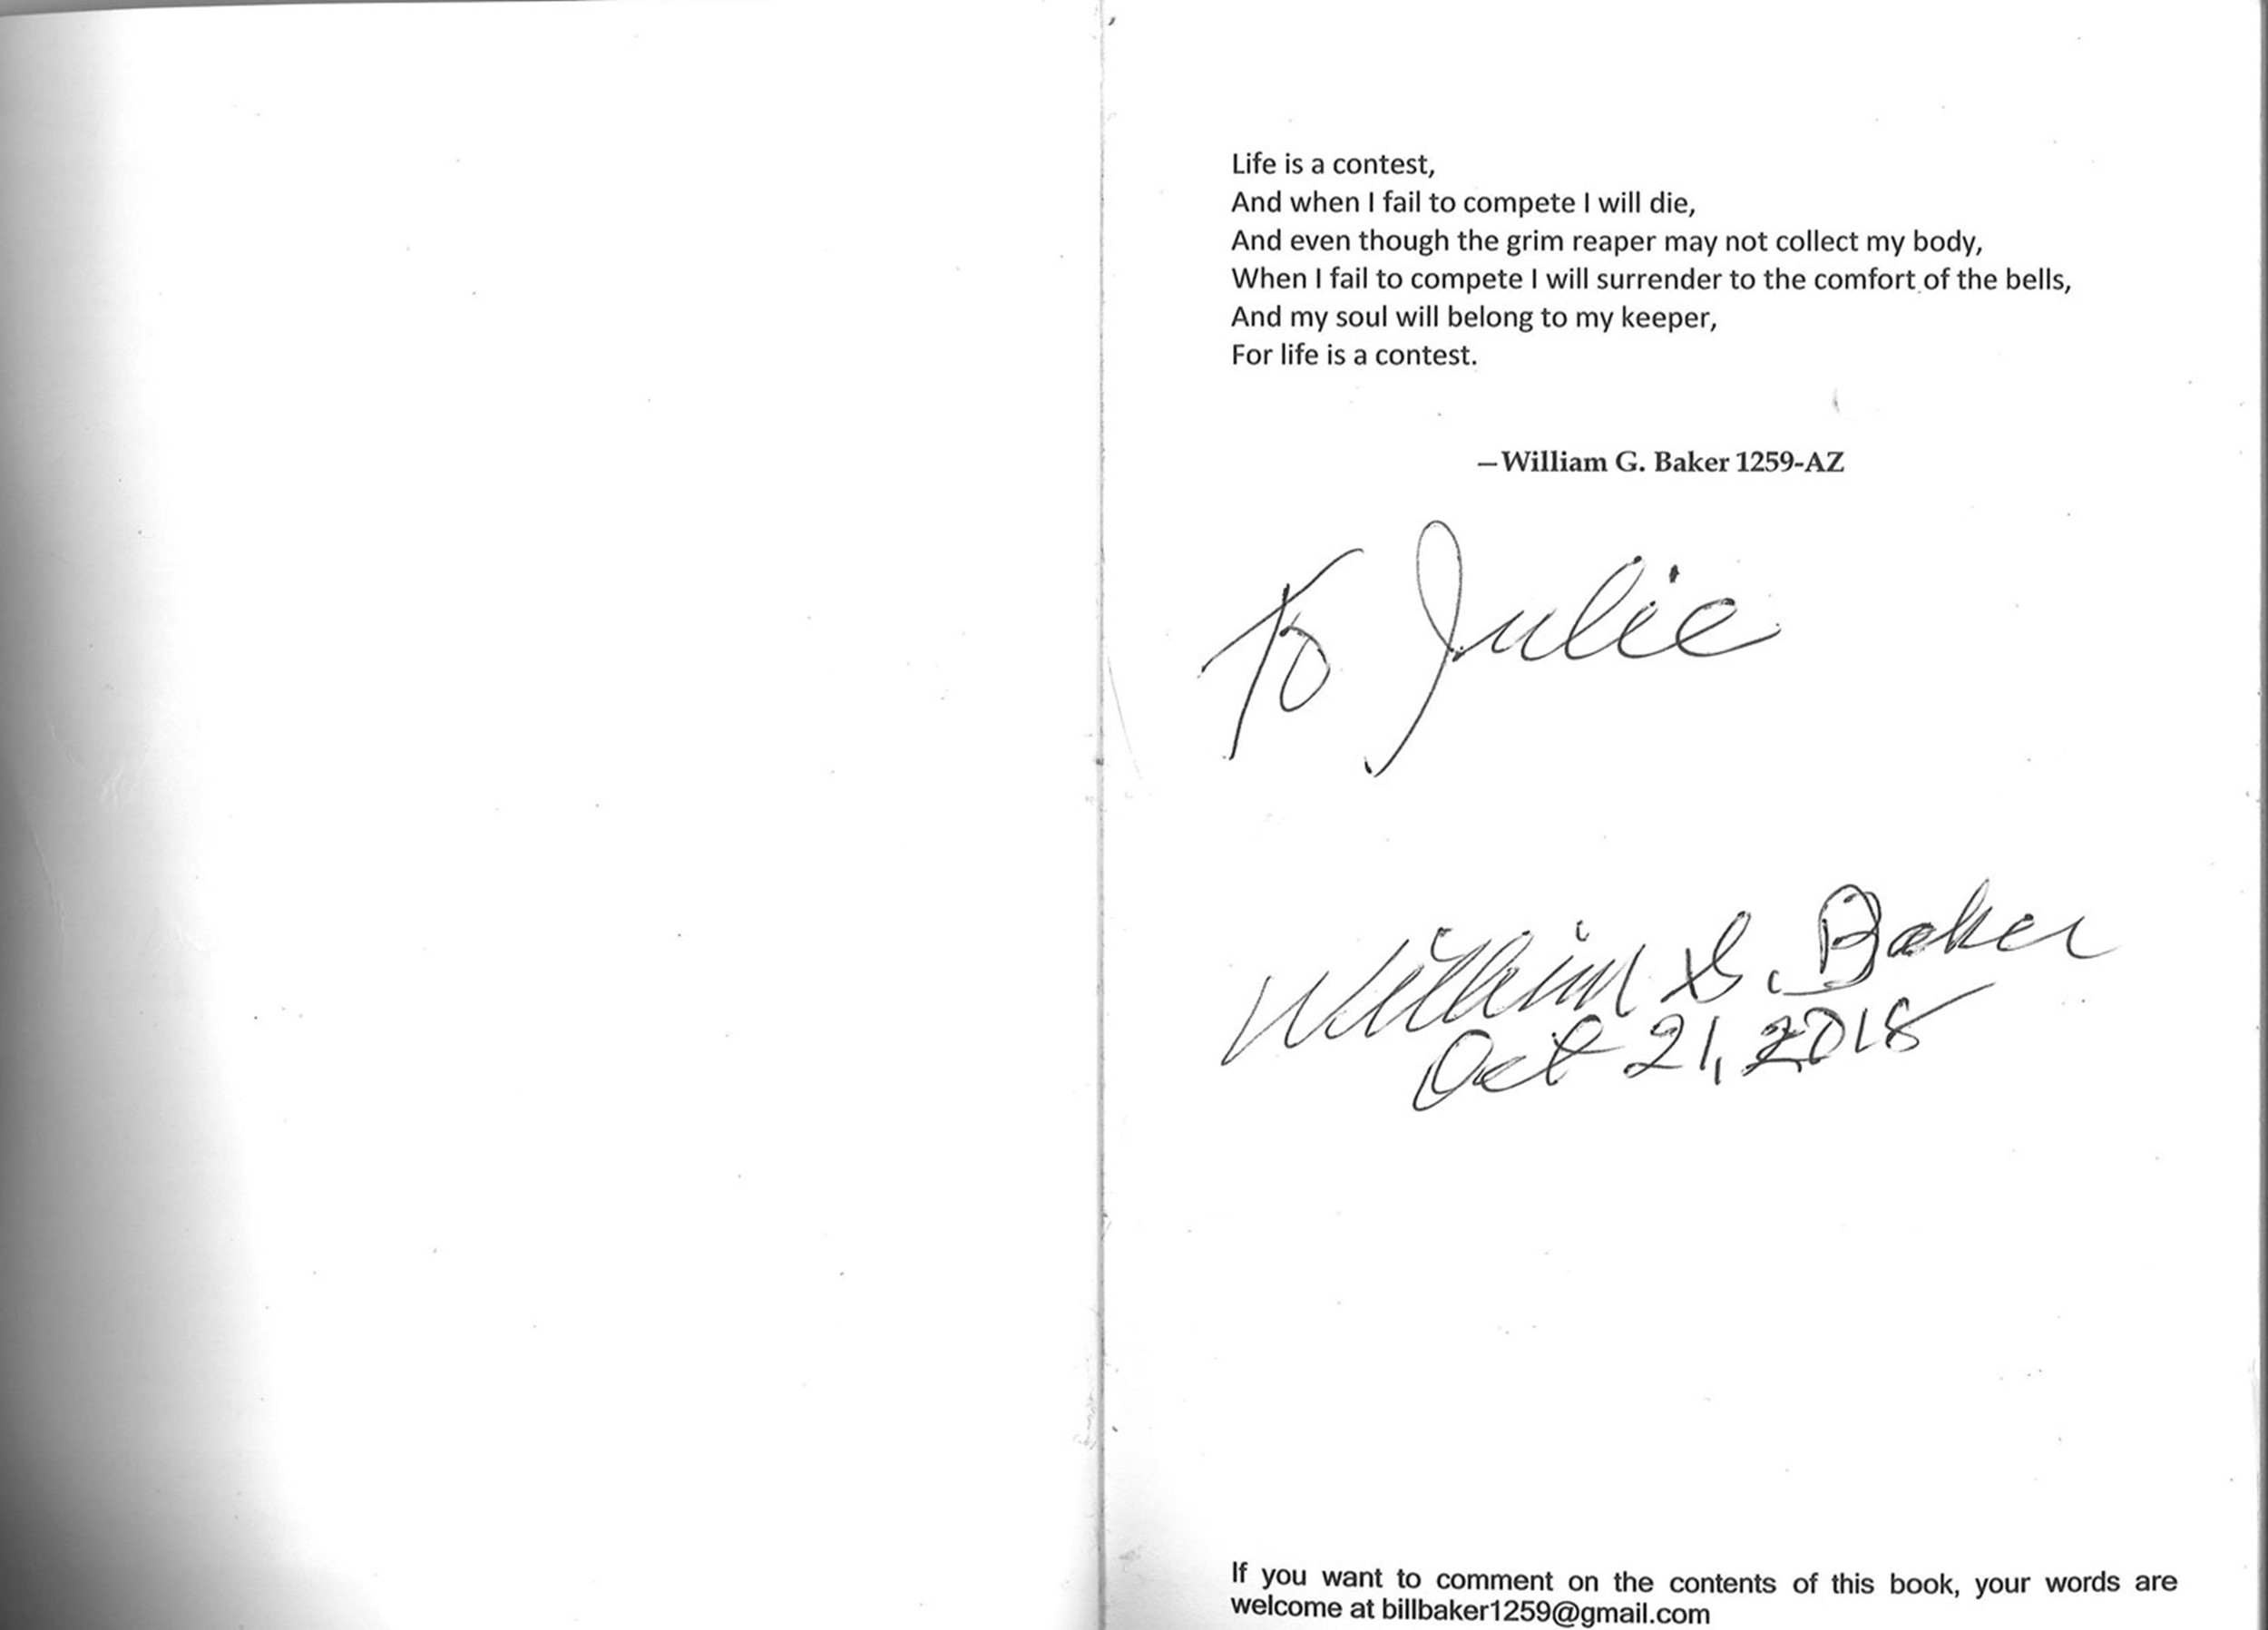 5 signed books. P A Davies signed Letterbox titled book. Sean Weafer signed business coaching - Image 2 of 5